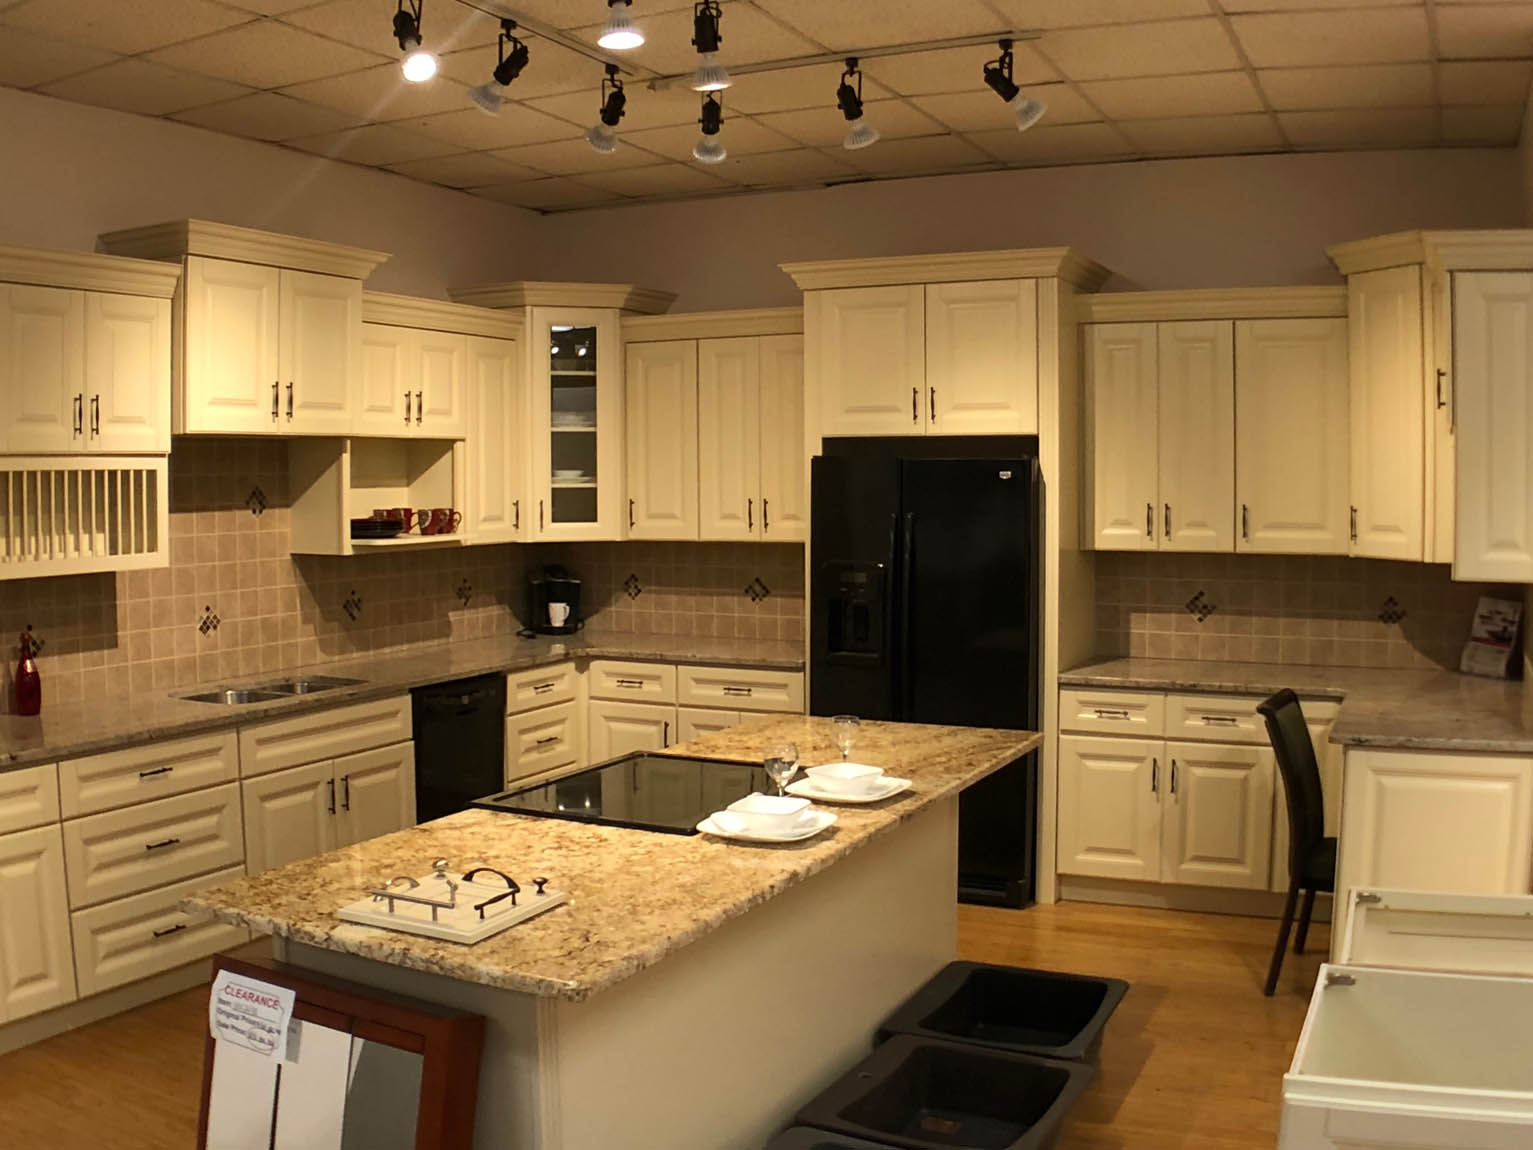 Focus on Cabinets While Kitchen Remodeling